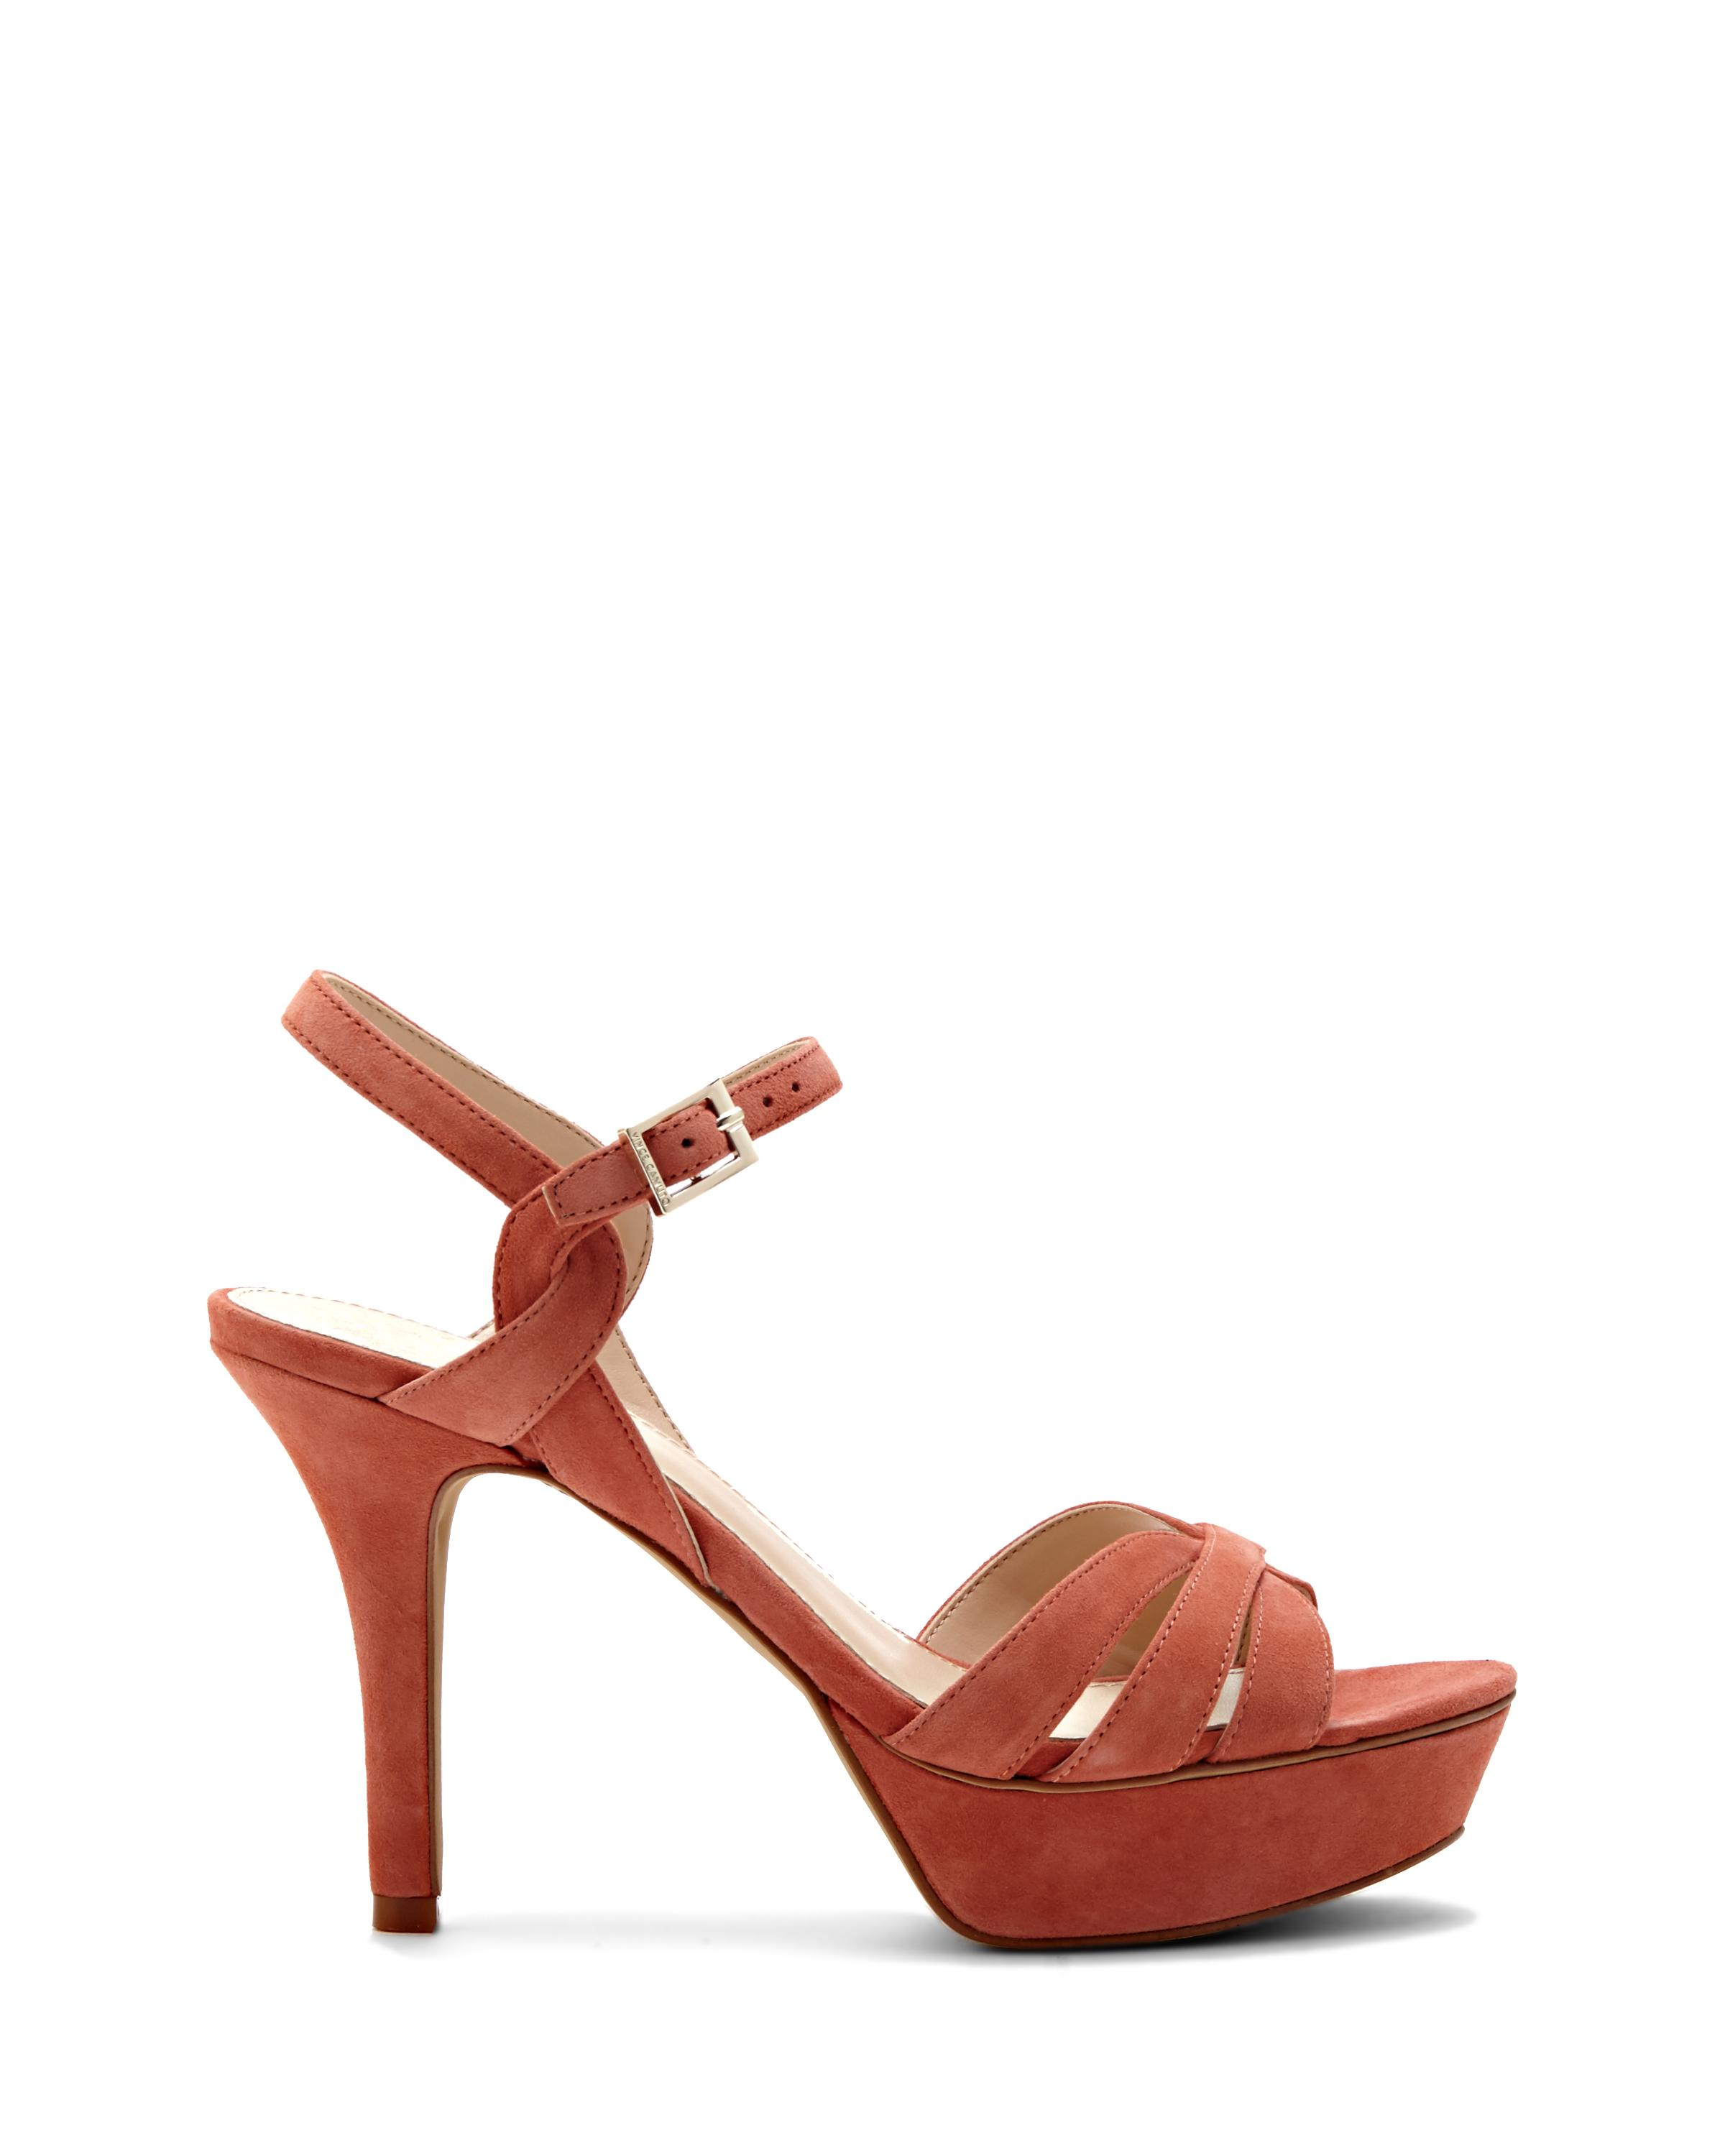 a13b771ca43 Lyst - Vince Camuto Peppa - Strappy Platform Sandal in Orange